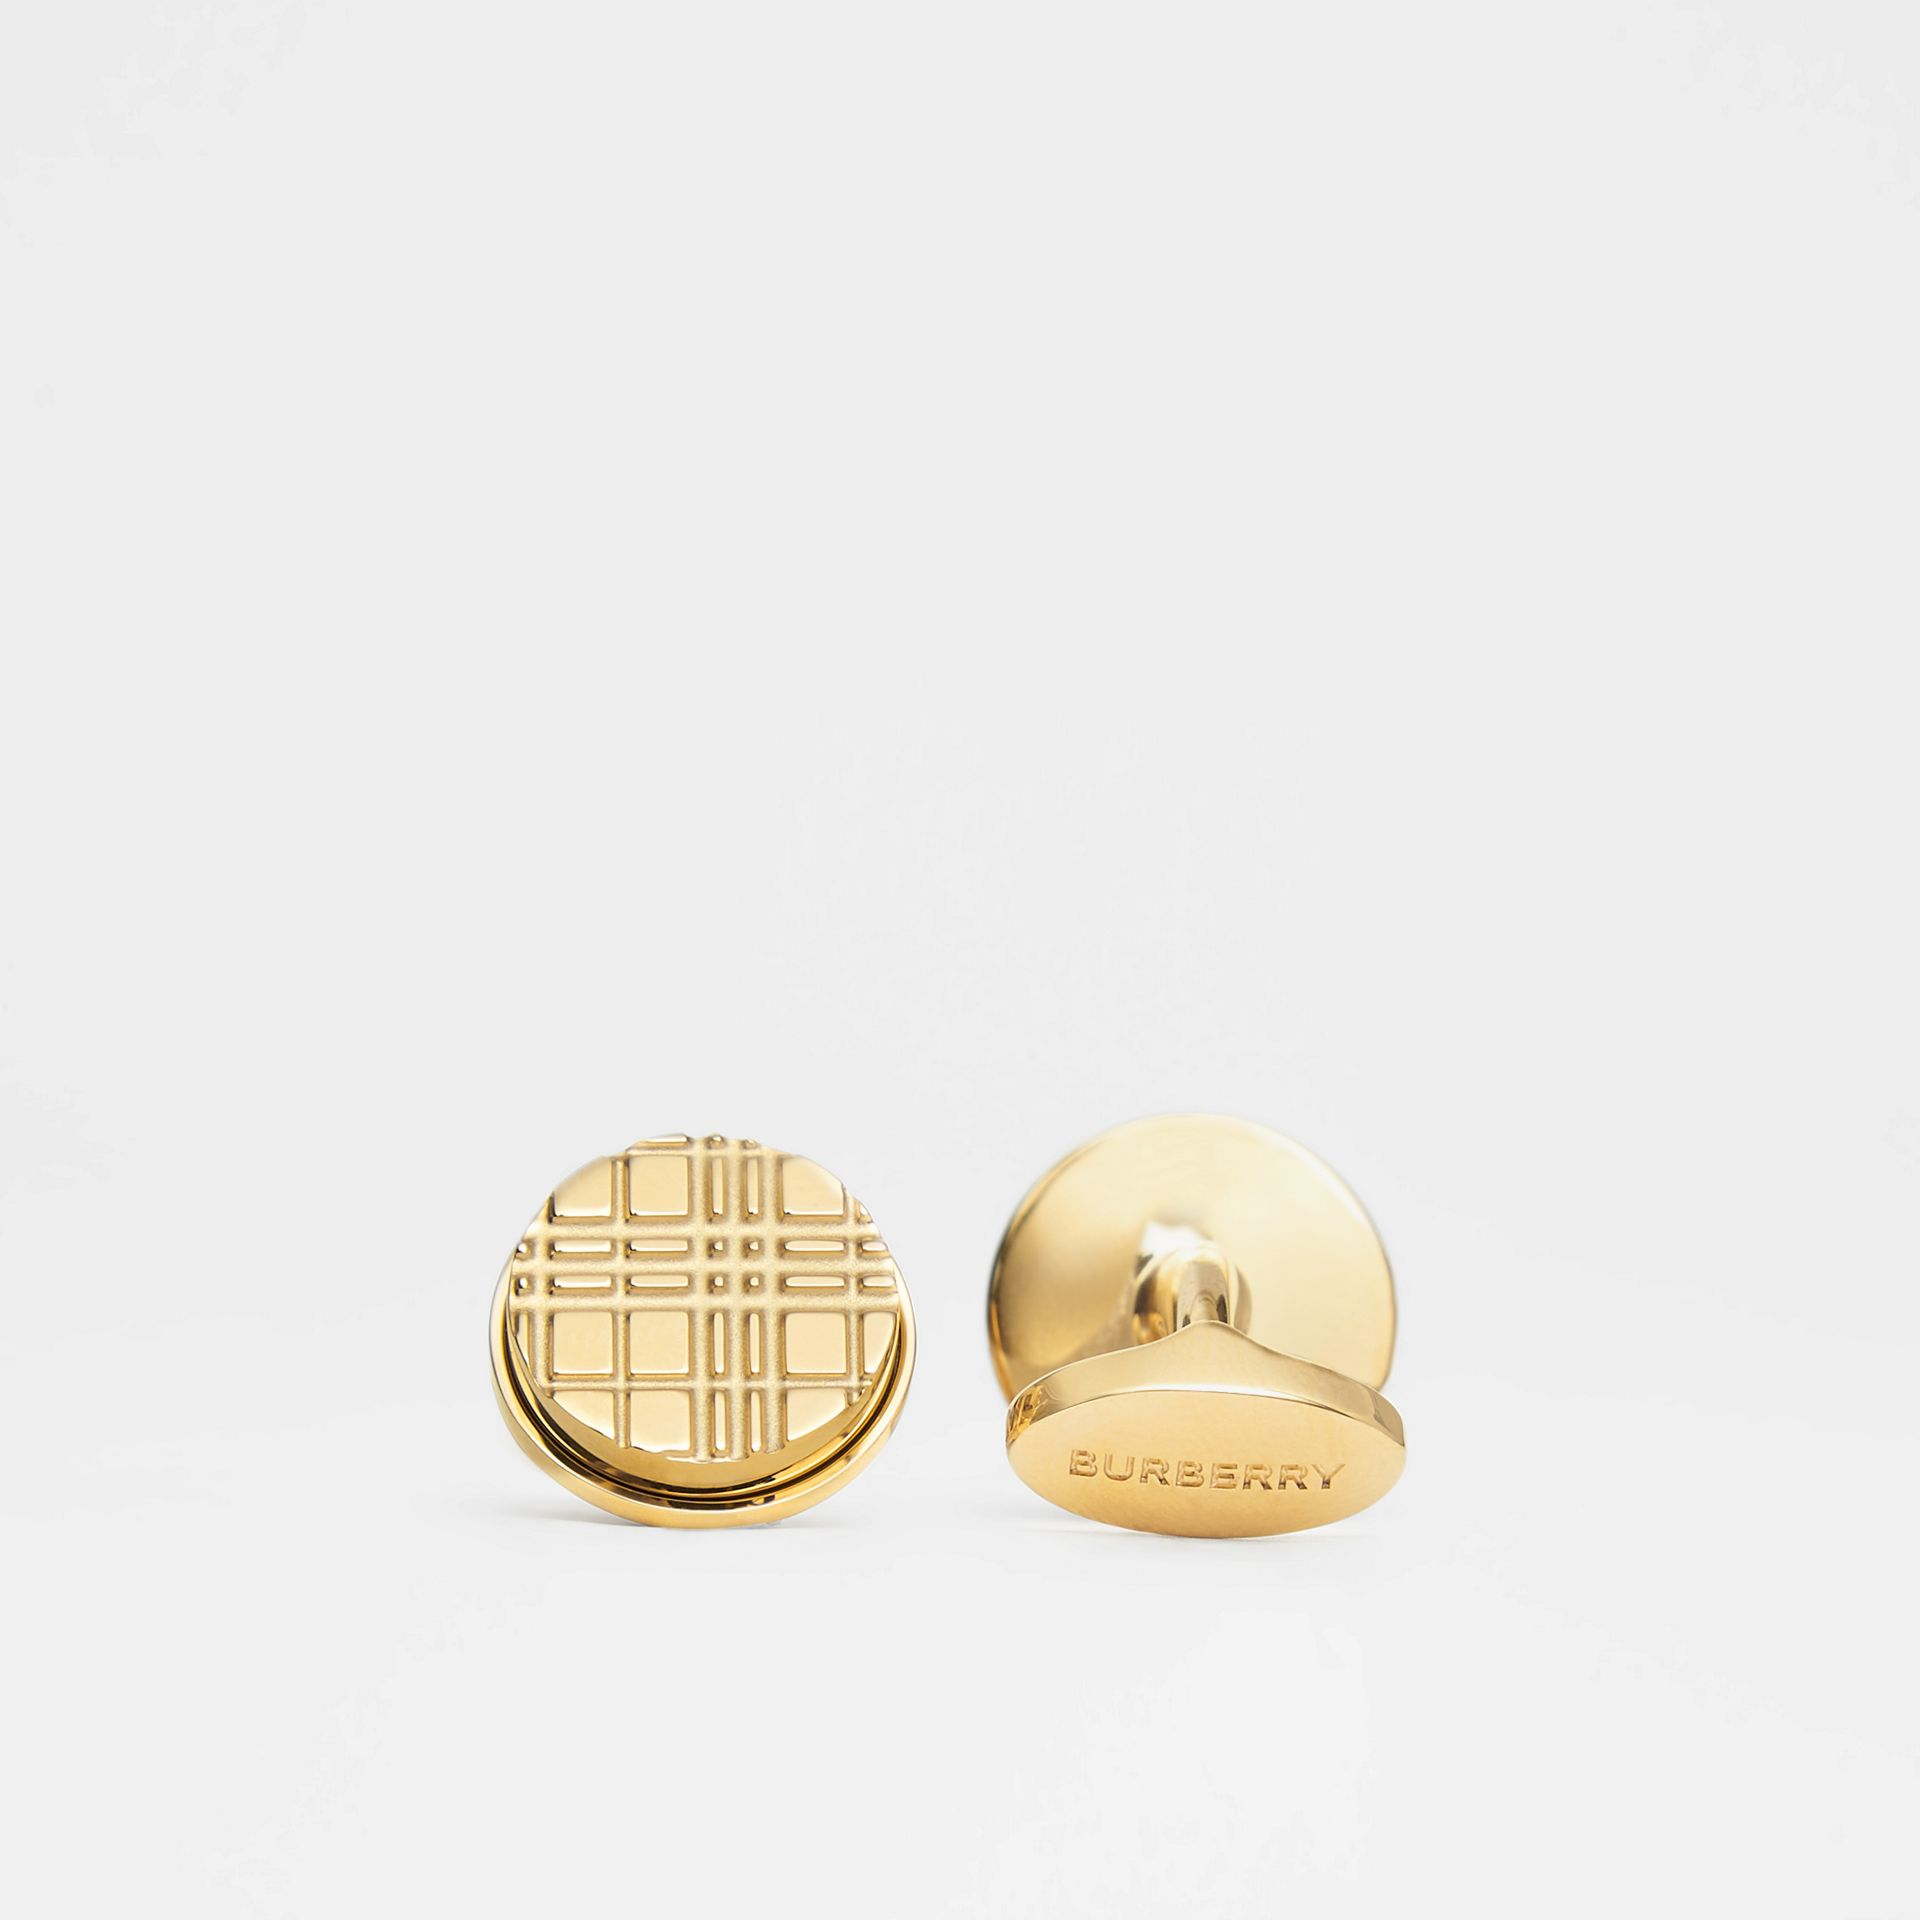 Gold-plated Check-engraved Round Cufflinks in Light - Men | Burberry - gallery image 1